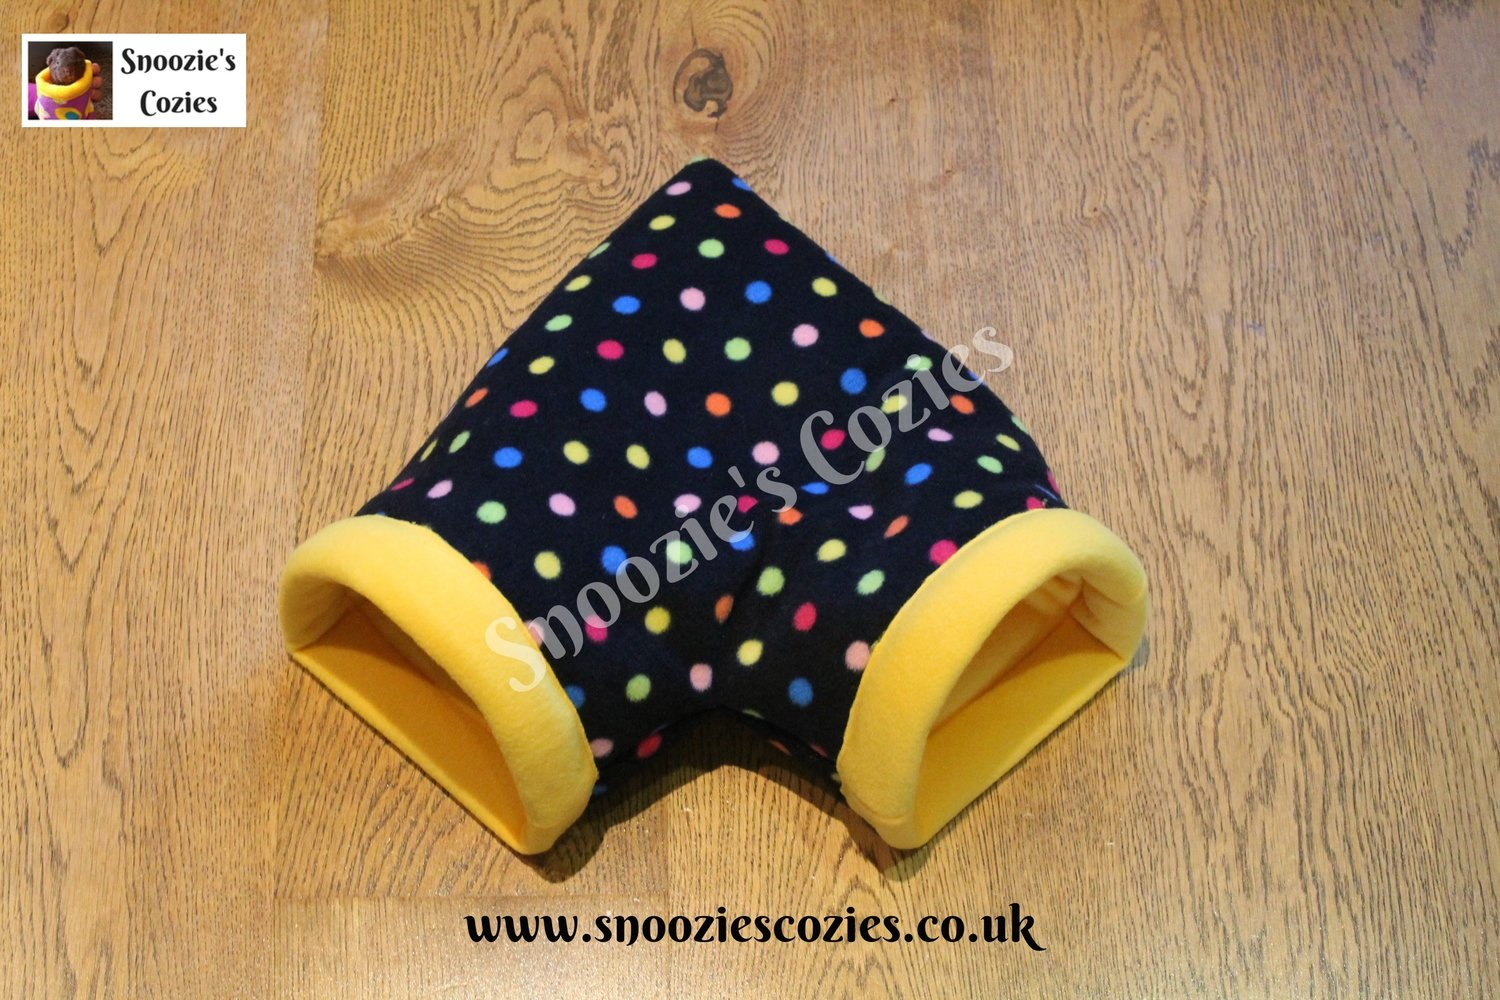 Corner Cozie - Black Multi-Spot/Yellow